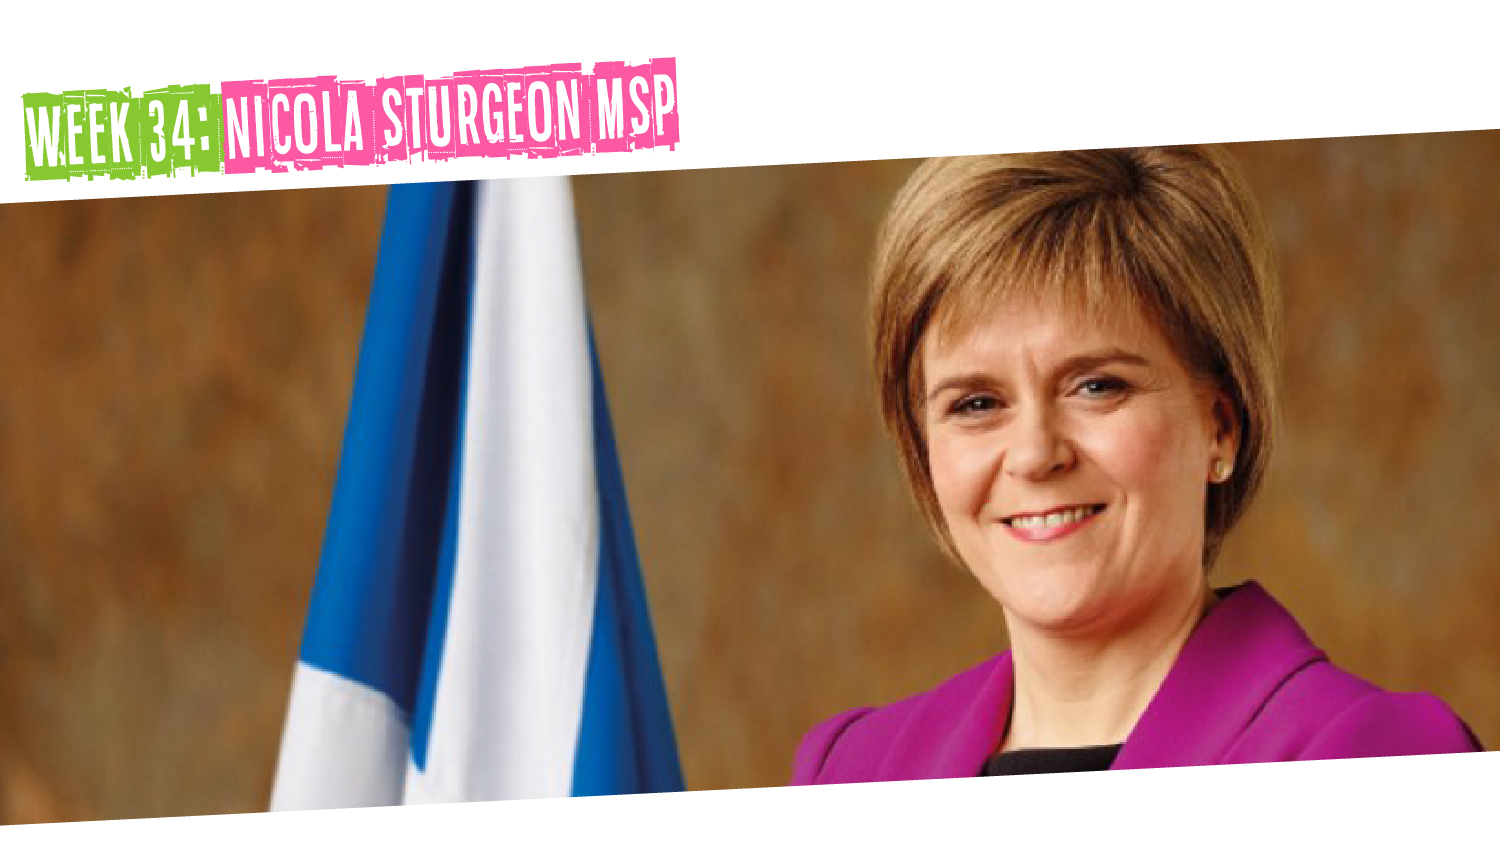 IYM Week 34: Nicola Sturgeon MSP